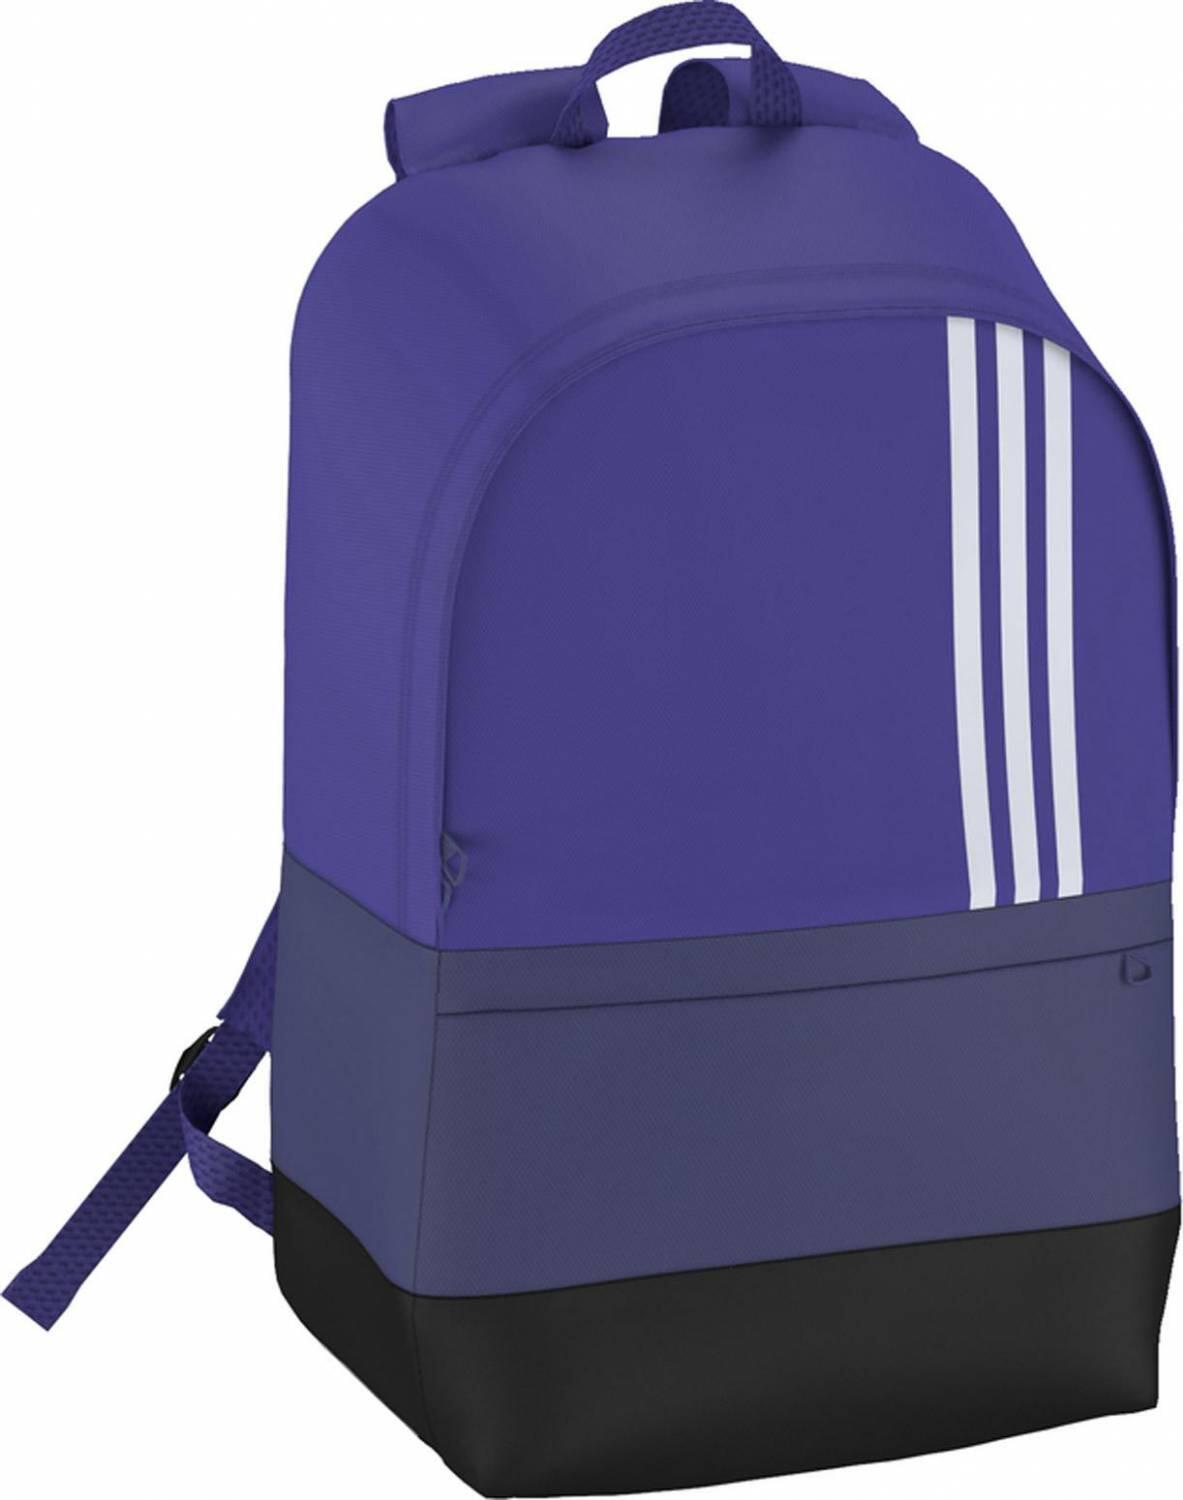 adidas-versatile-backpack-tagesrucksack-farbe-night-flash-s15-black-amazon-purple-f14-clear-grey-